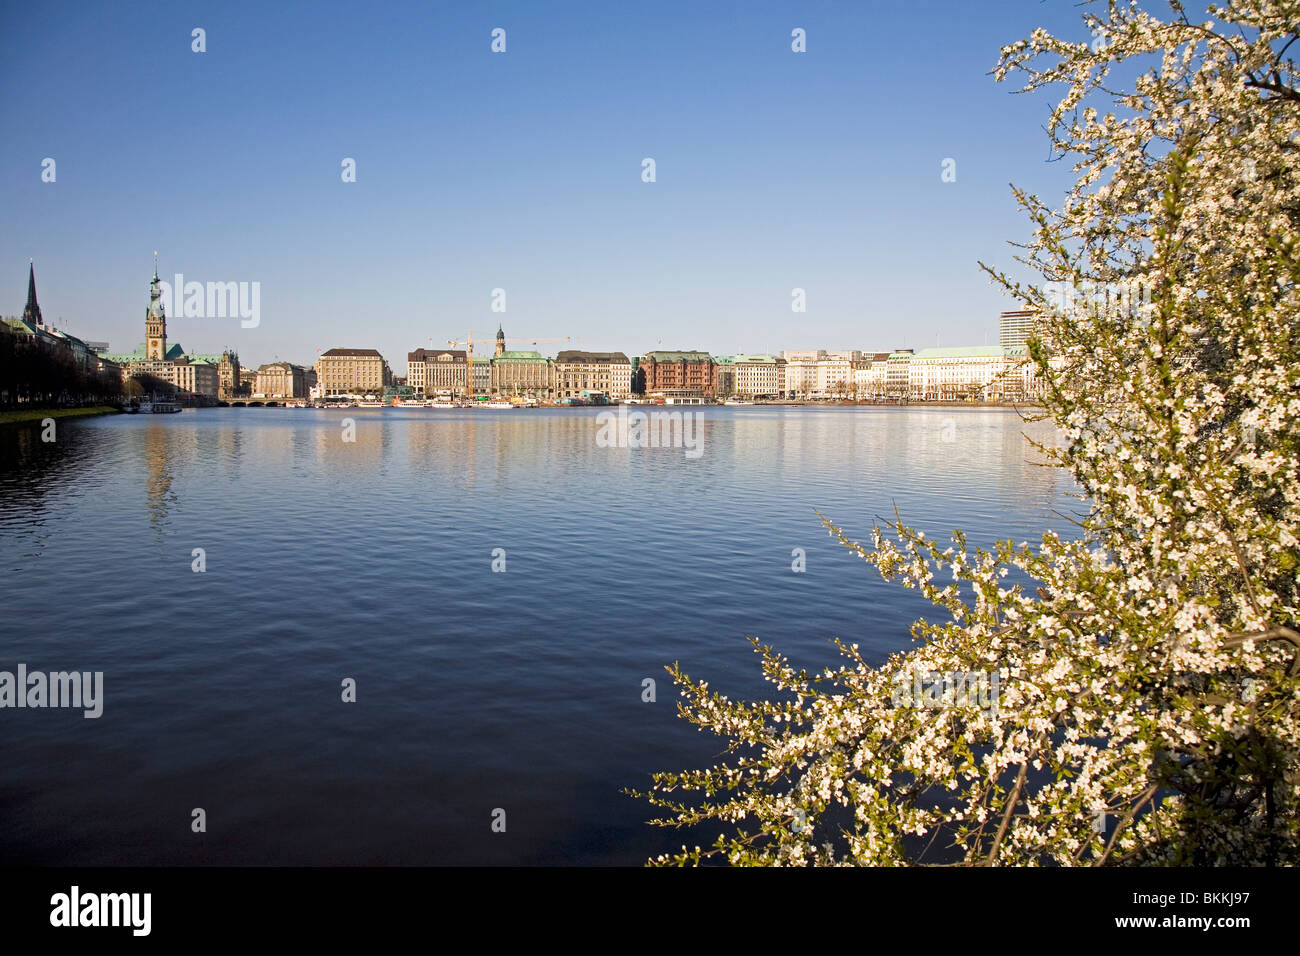 Spring sunshine on the Binnenalster (Innen Alster Lake) in the city of Hamburg, Germany. - Stock Image